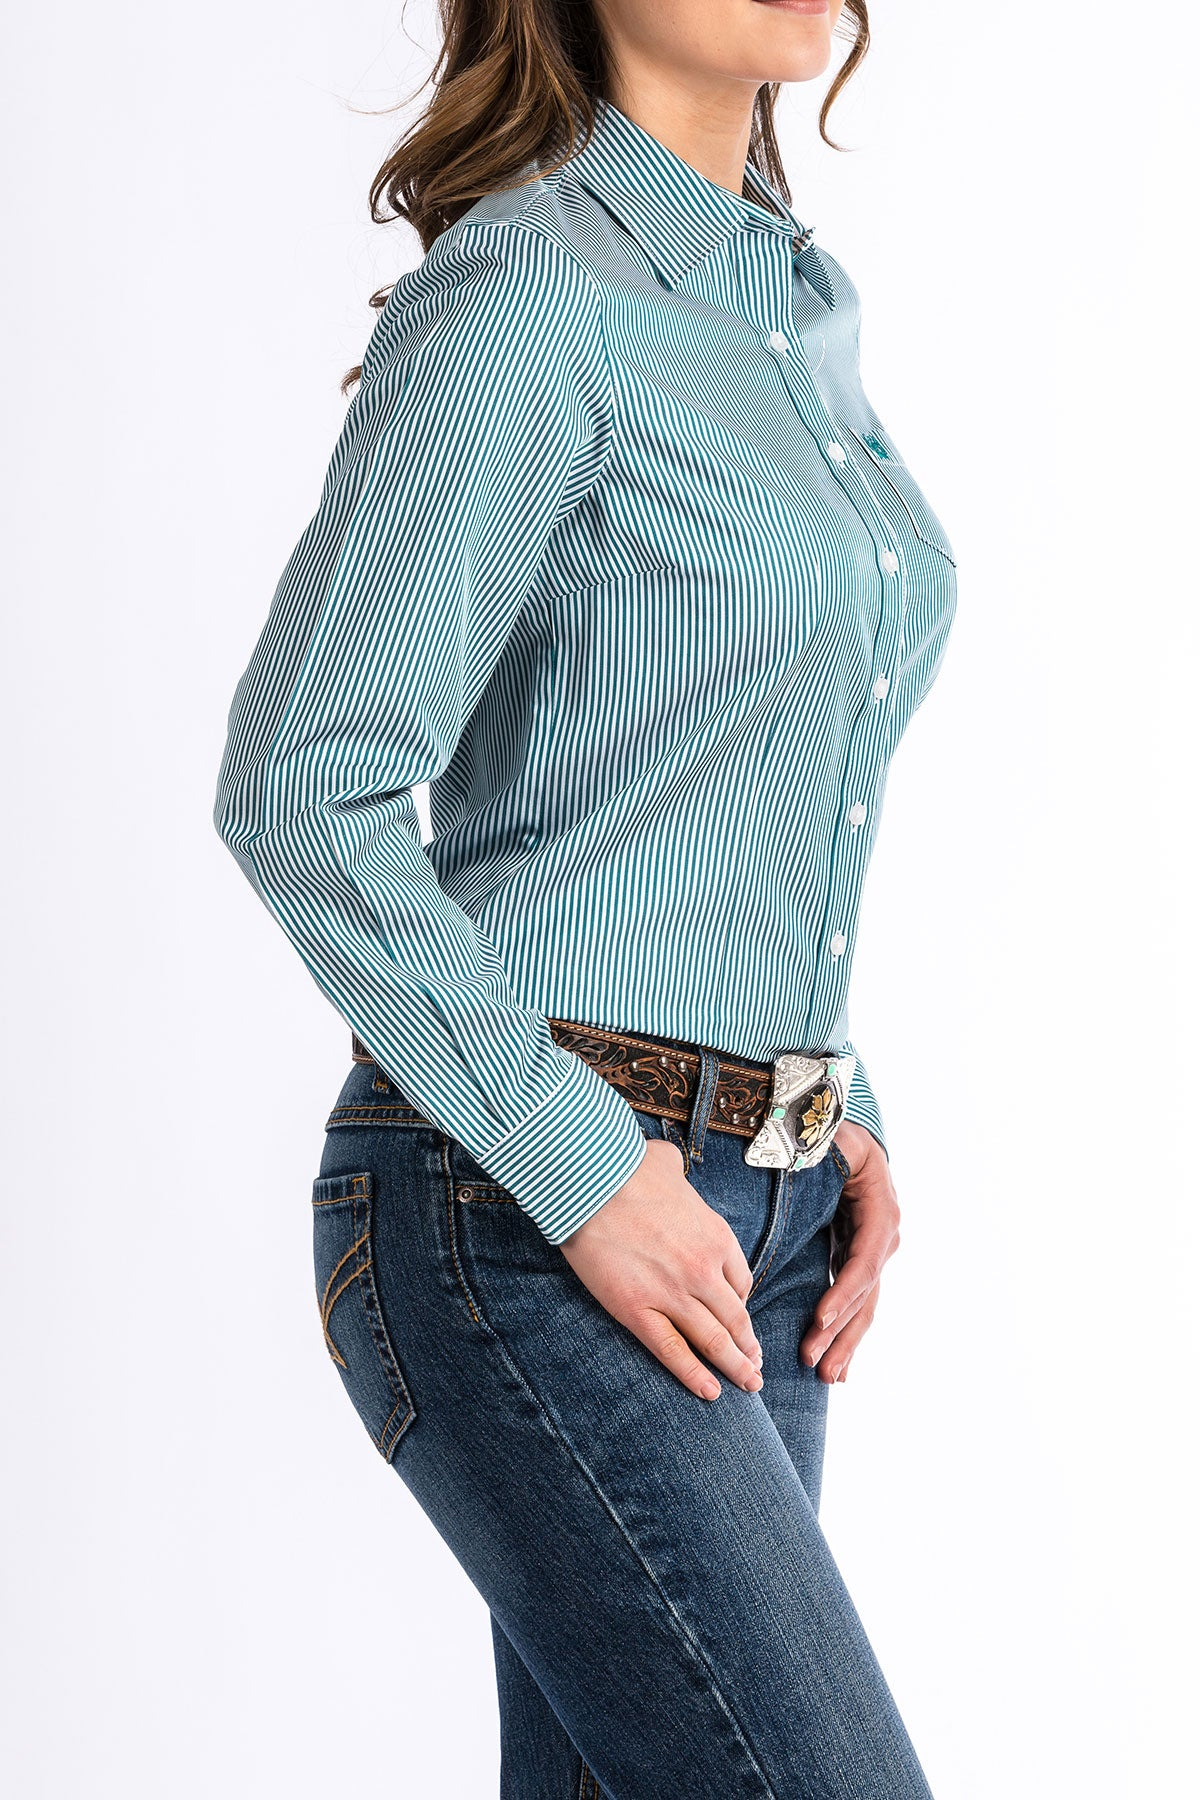 CINCH Teal and White Stripe Button Up Shirt